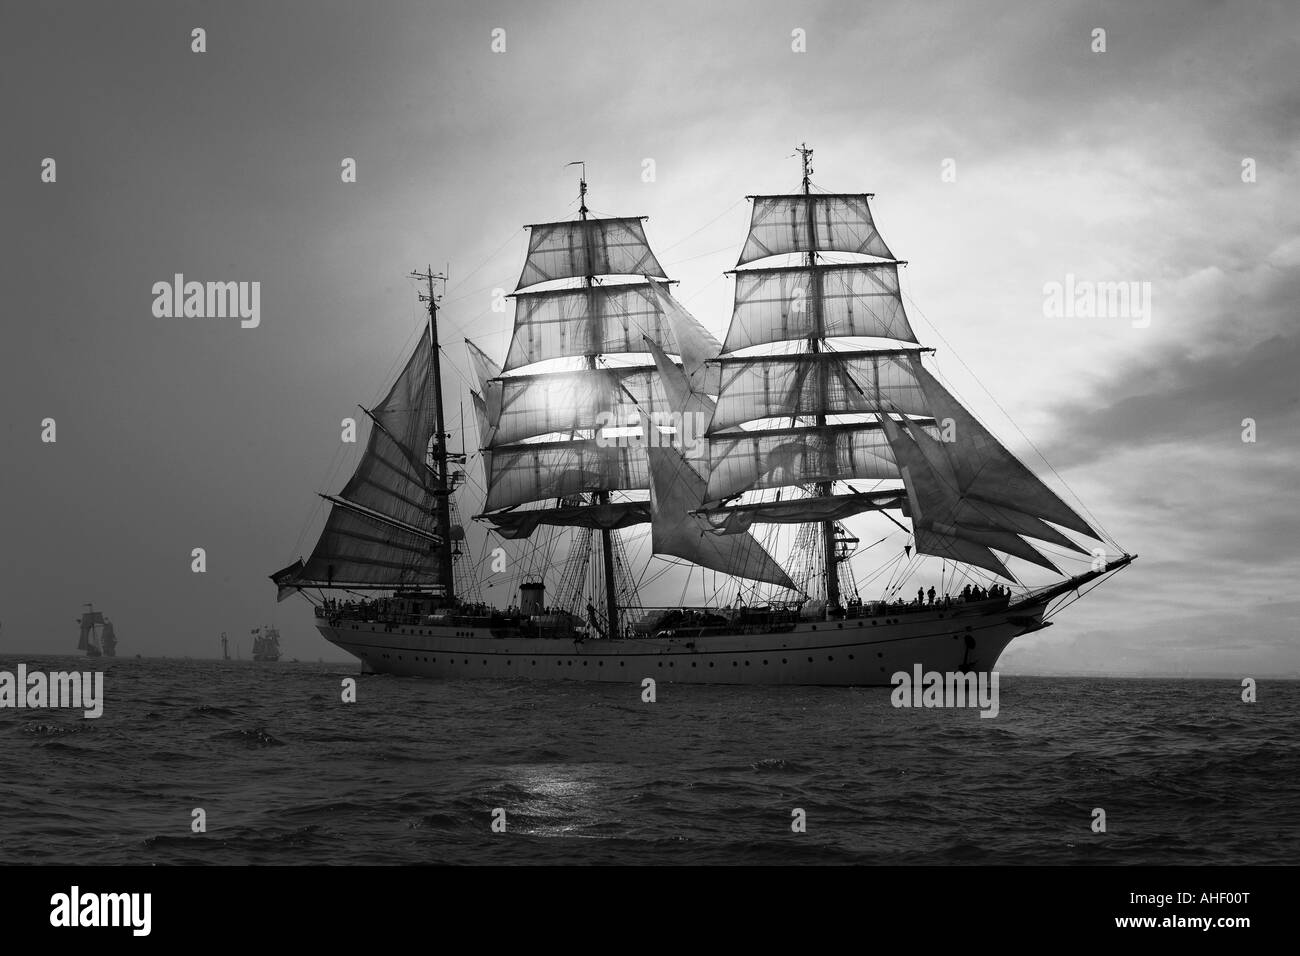 Tall ship on the open ocean - Stock Image